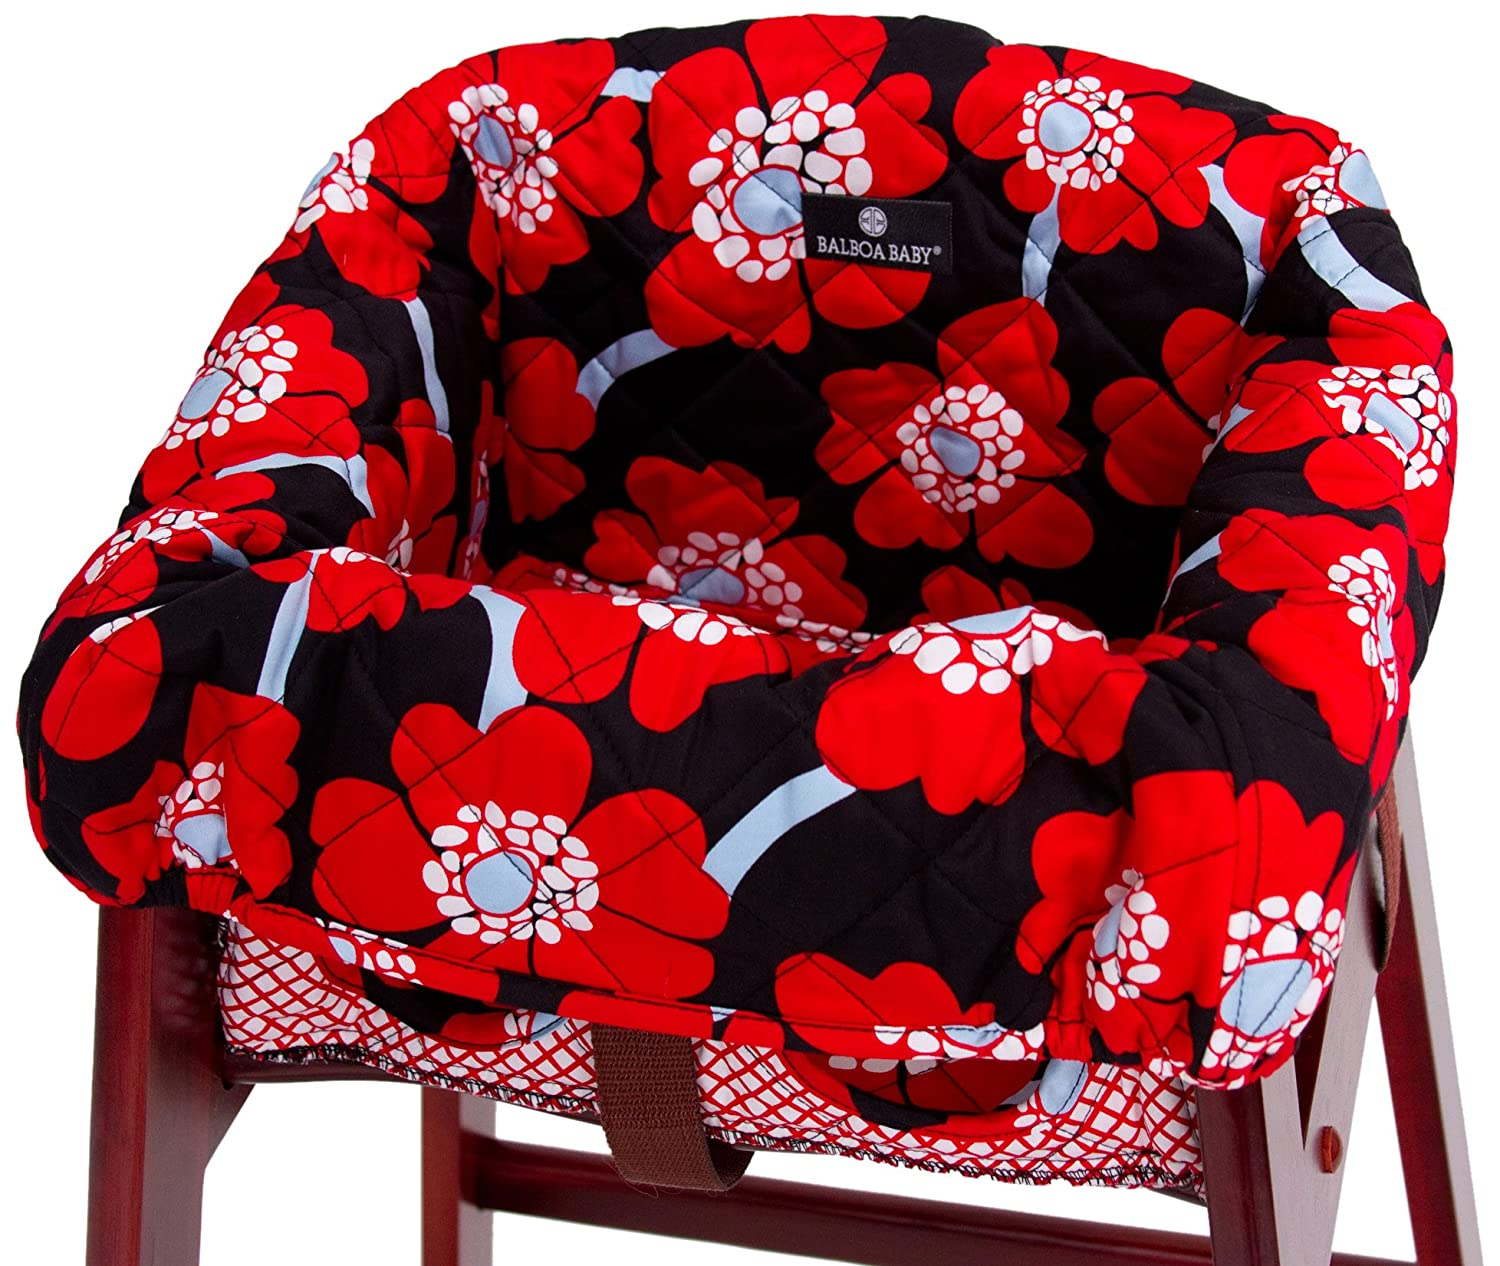 Groovy Balboa Baby High Chair Cover Red Poppy Discontinued By Manufacturer Alphanode Cool Chair Designs And Ideas Alphanodeonline